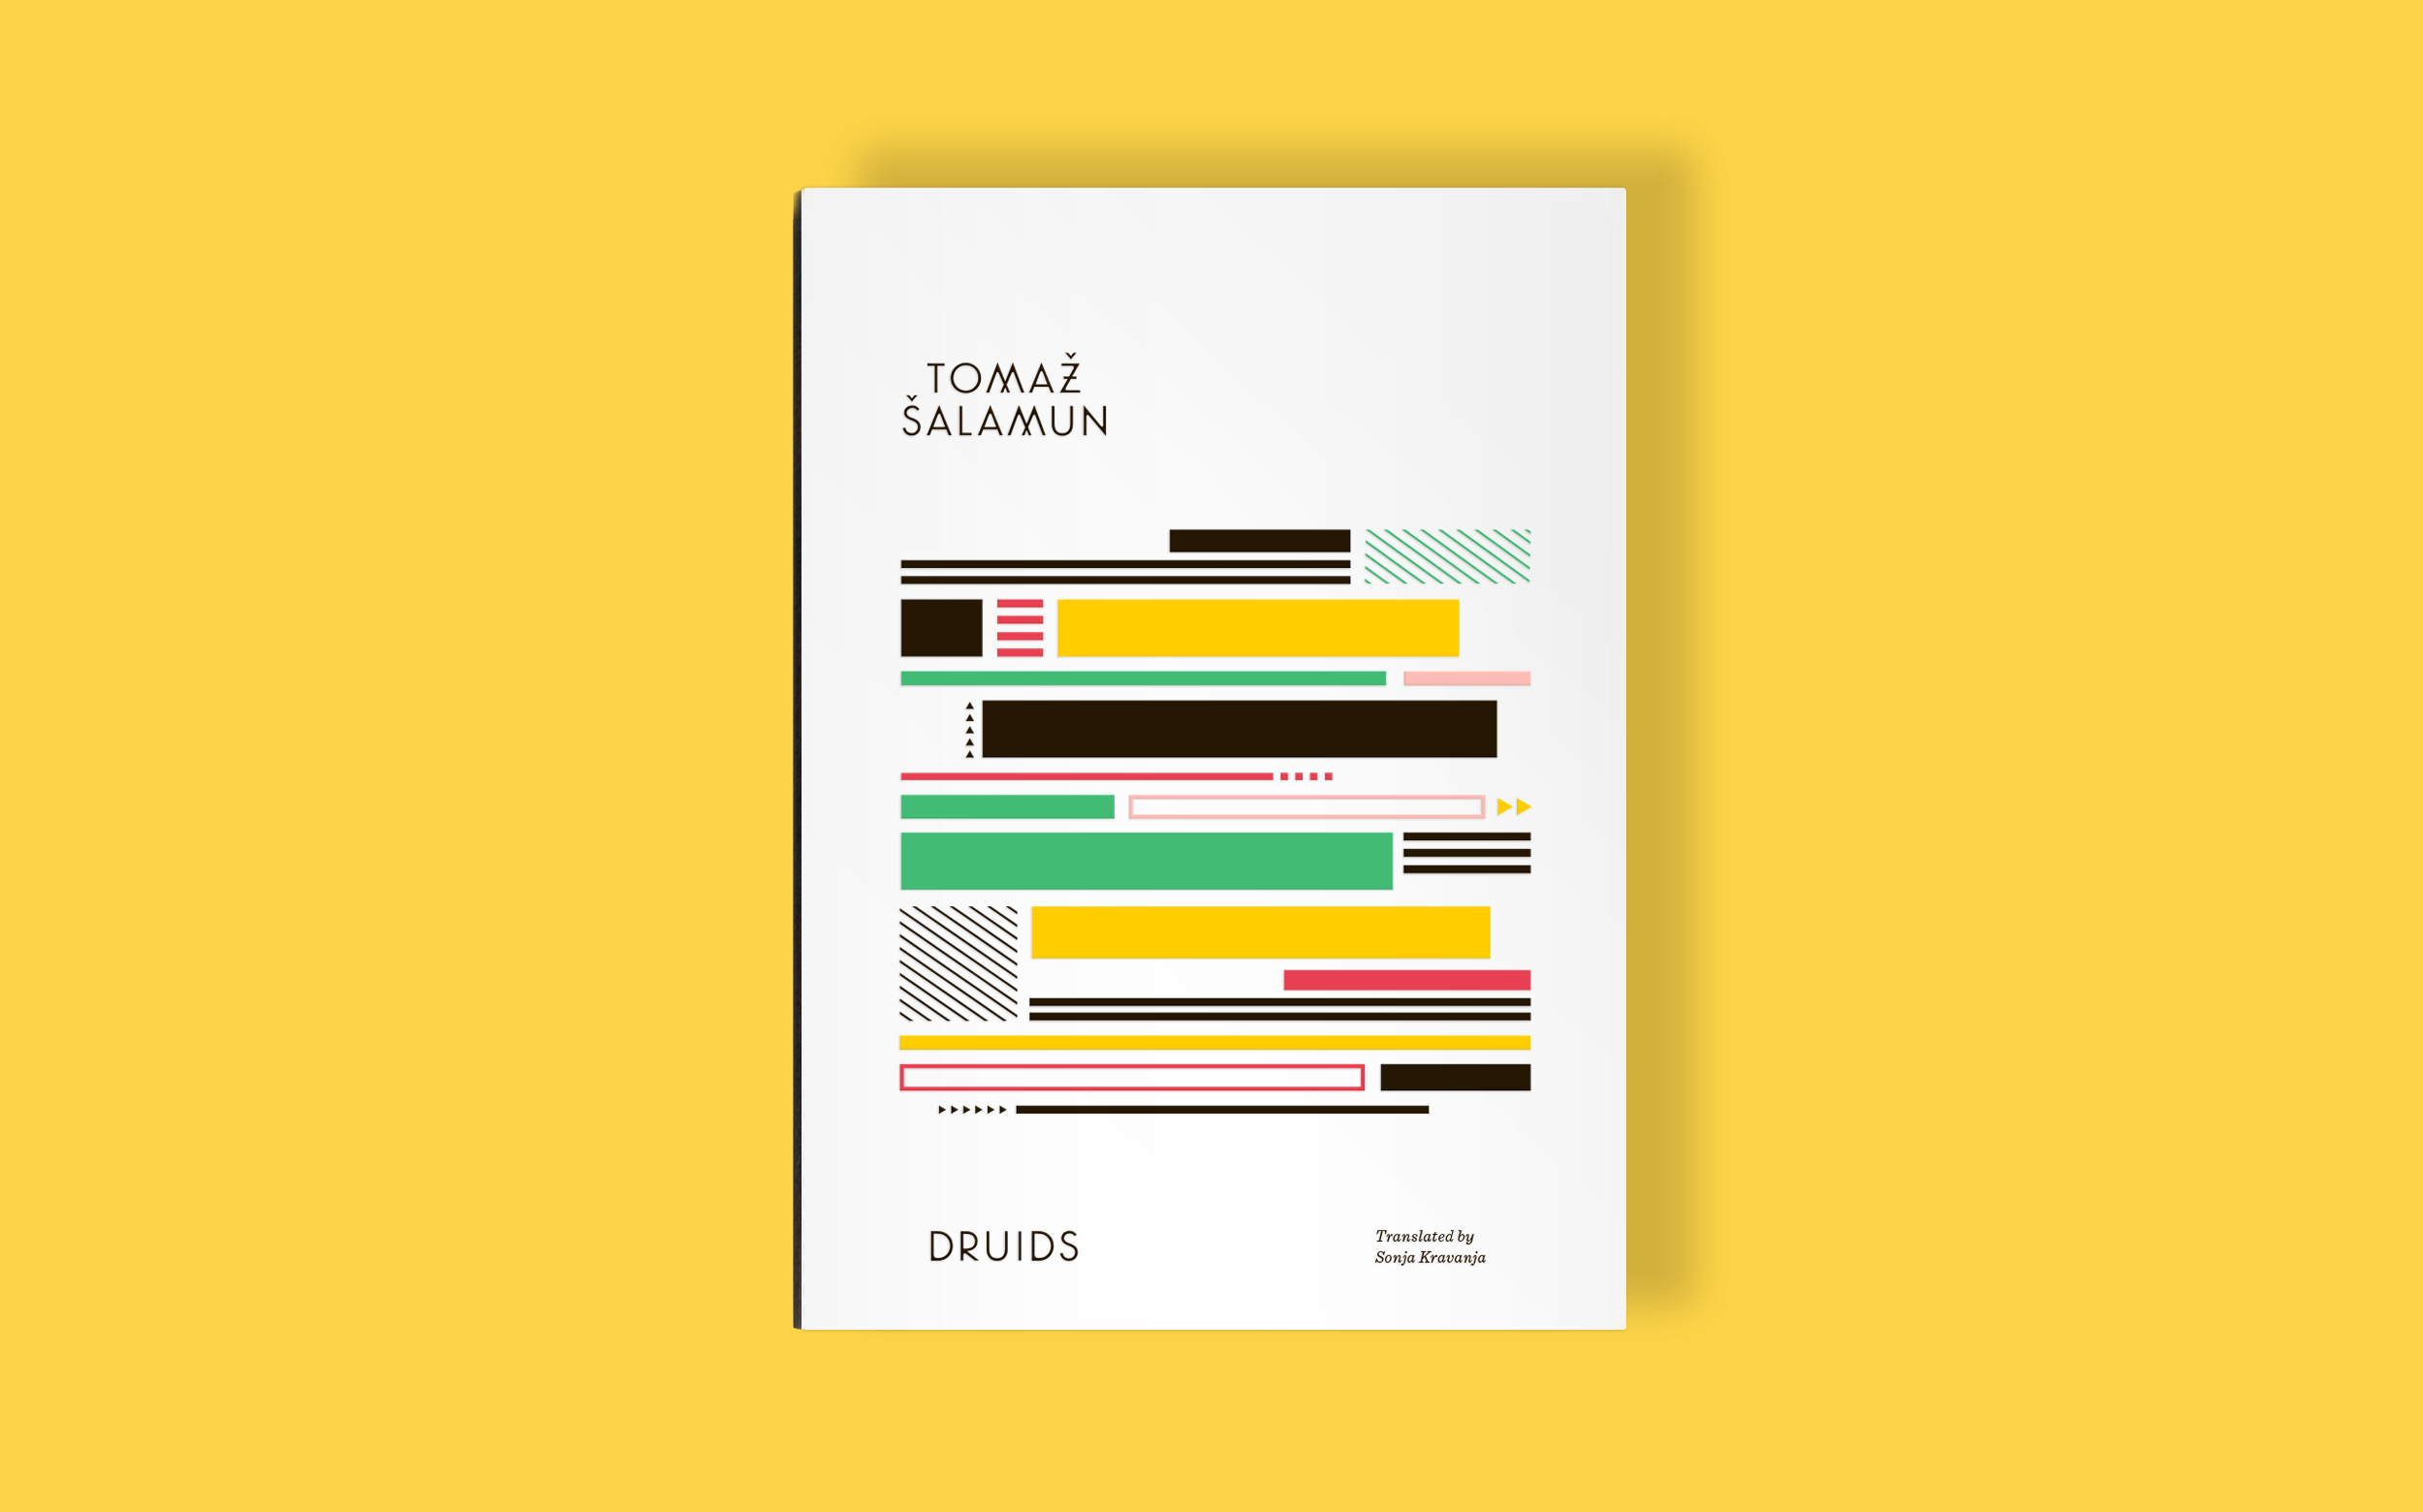 Druids by Tomaz Salamun,. Book cover design, illustration, and custom typography by Abby Haddican Studio.